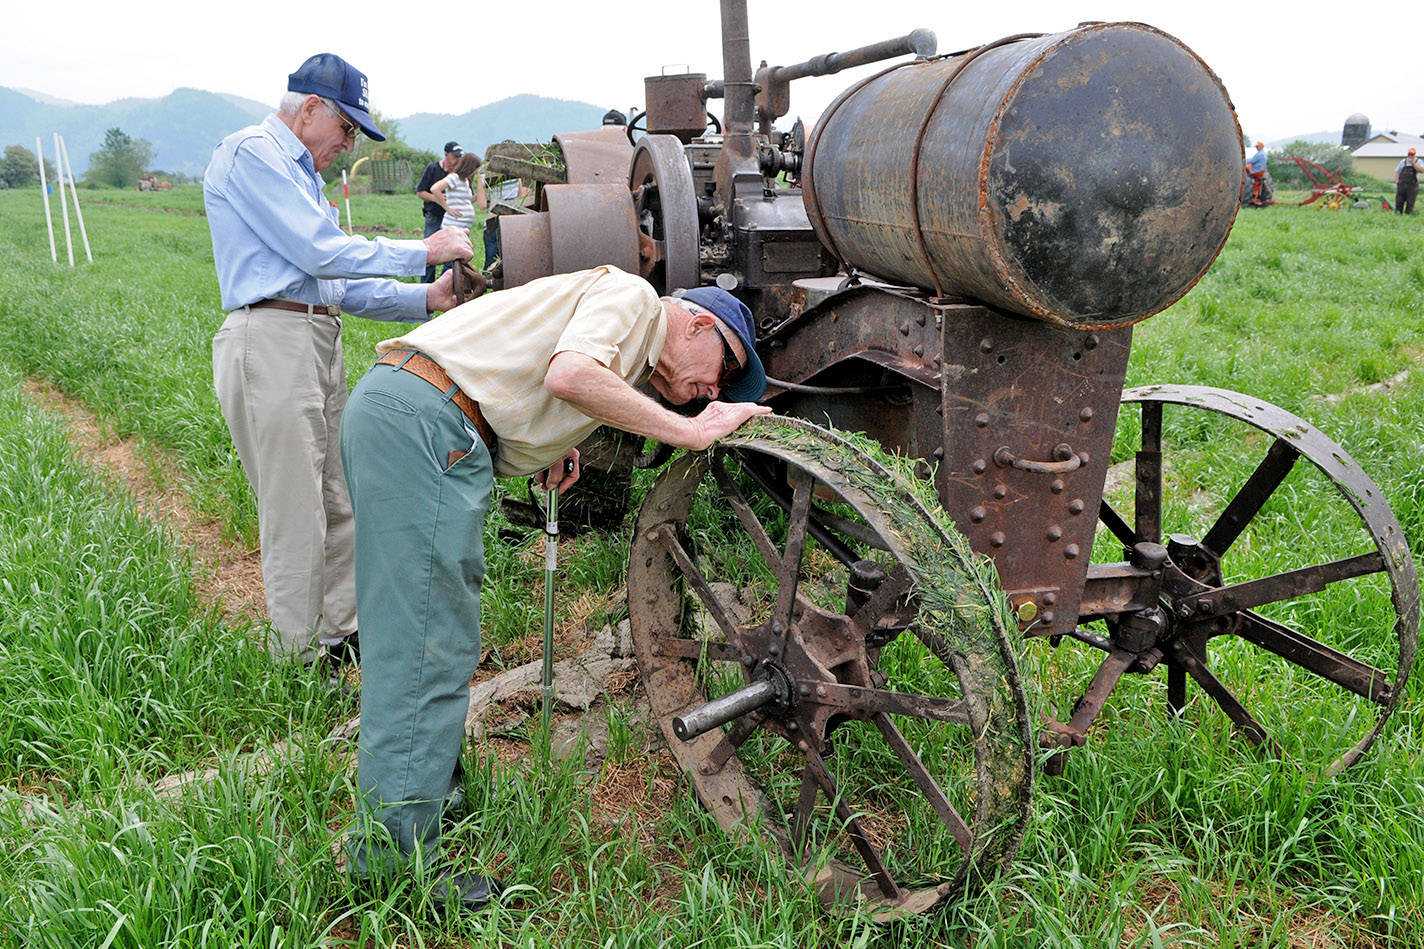 Monday, Oct. 12 is Old Farmers' Day. Pictured here are Aaron Warkentin (right) and Abe Goertz as they take a close look at a 1919 tractor during the 91st annual Chilliwack Plowing Match in Abbotsford on May 11, 2013. (Jenna Hauck/ Black Press file)